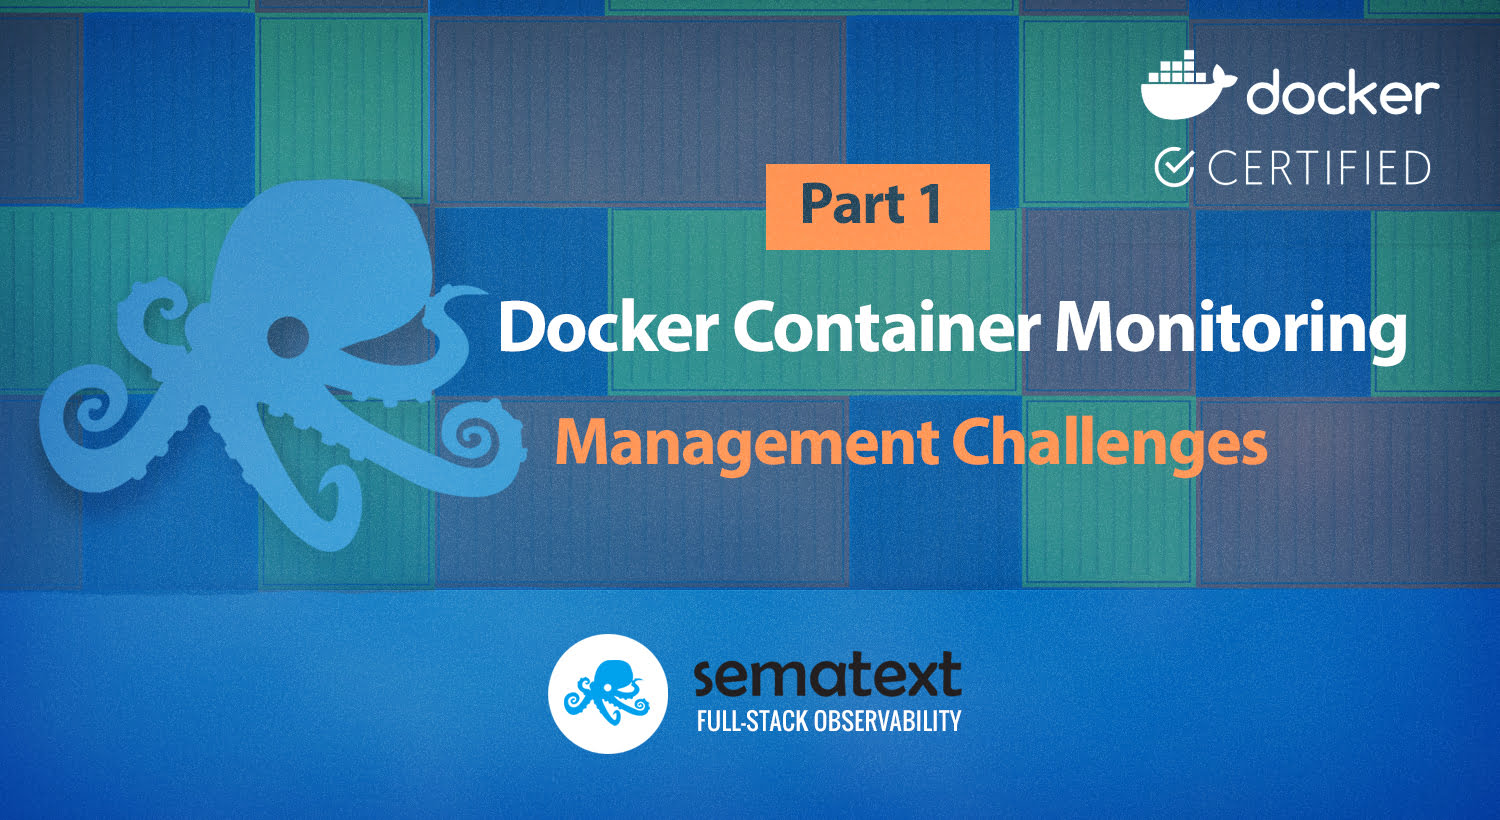 Docker Container Monitoring and Management Challenges - Sematext